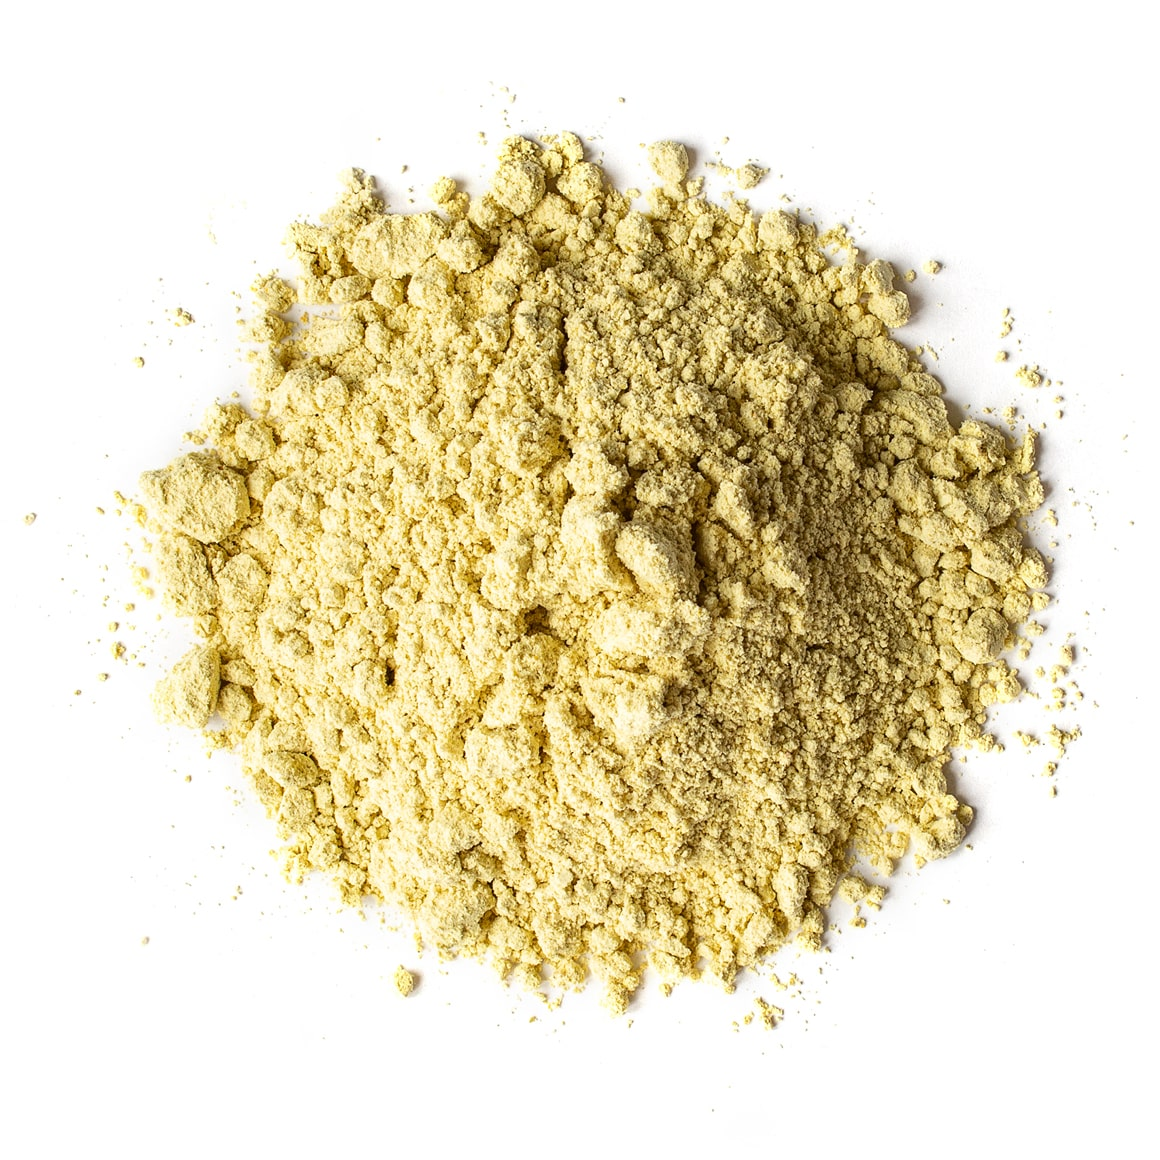 fenugreek-powder-main